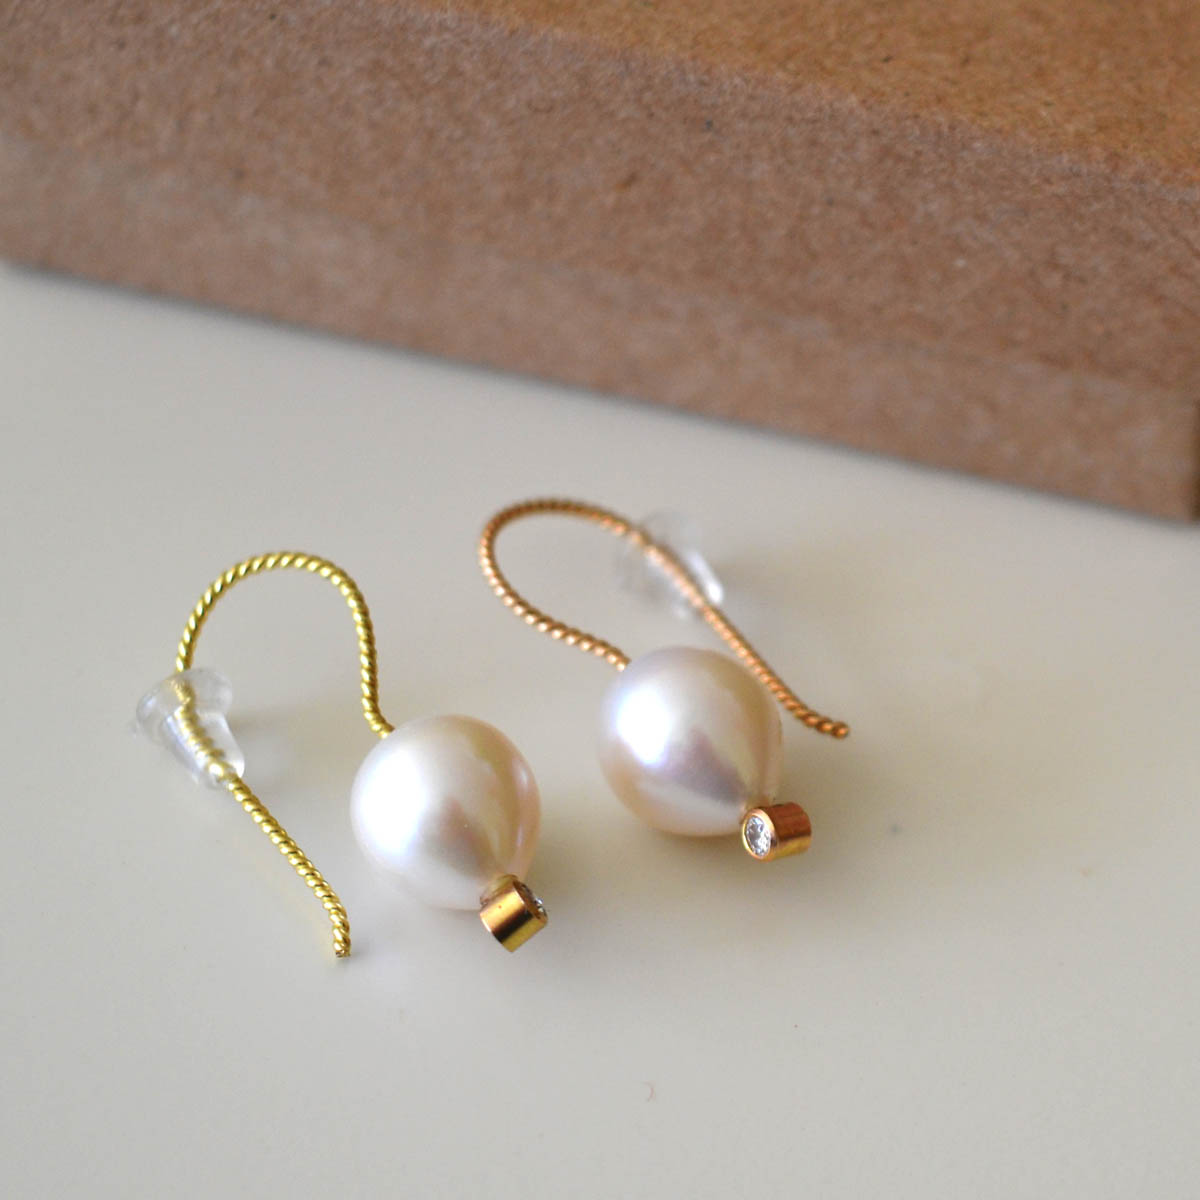 Julie Havener Earrings - These earrings created by and generously provided by Julie Havener. Featuring the timeless combination of 14K gold and brilliant pearls, they're sure to always be in style.. You can see more of Julie's work at the Lisa Hall Studio on NE Hbr., or visit her online Etsy shop.Retail Value: $300.00